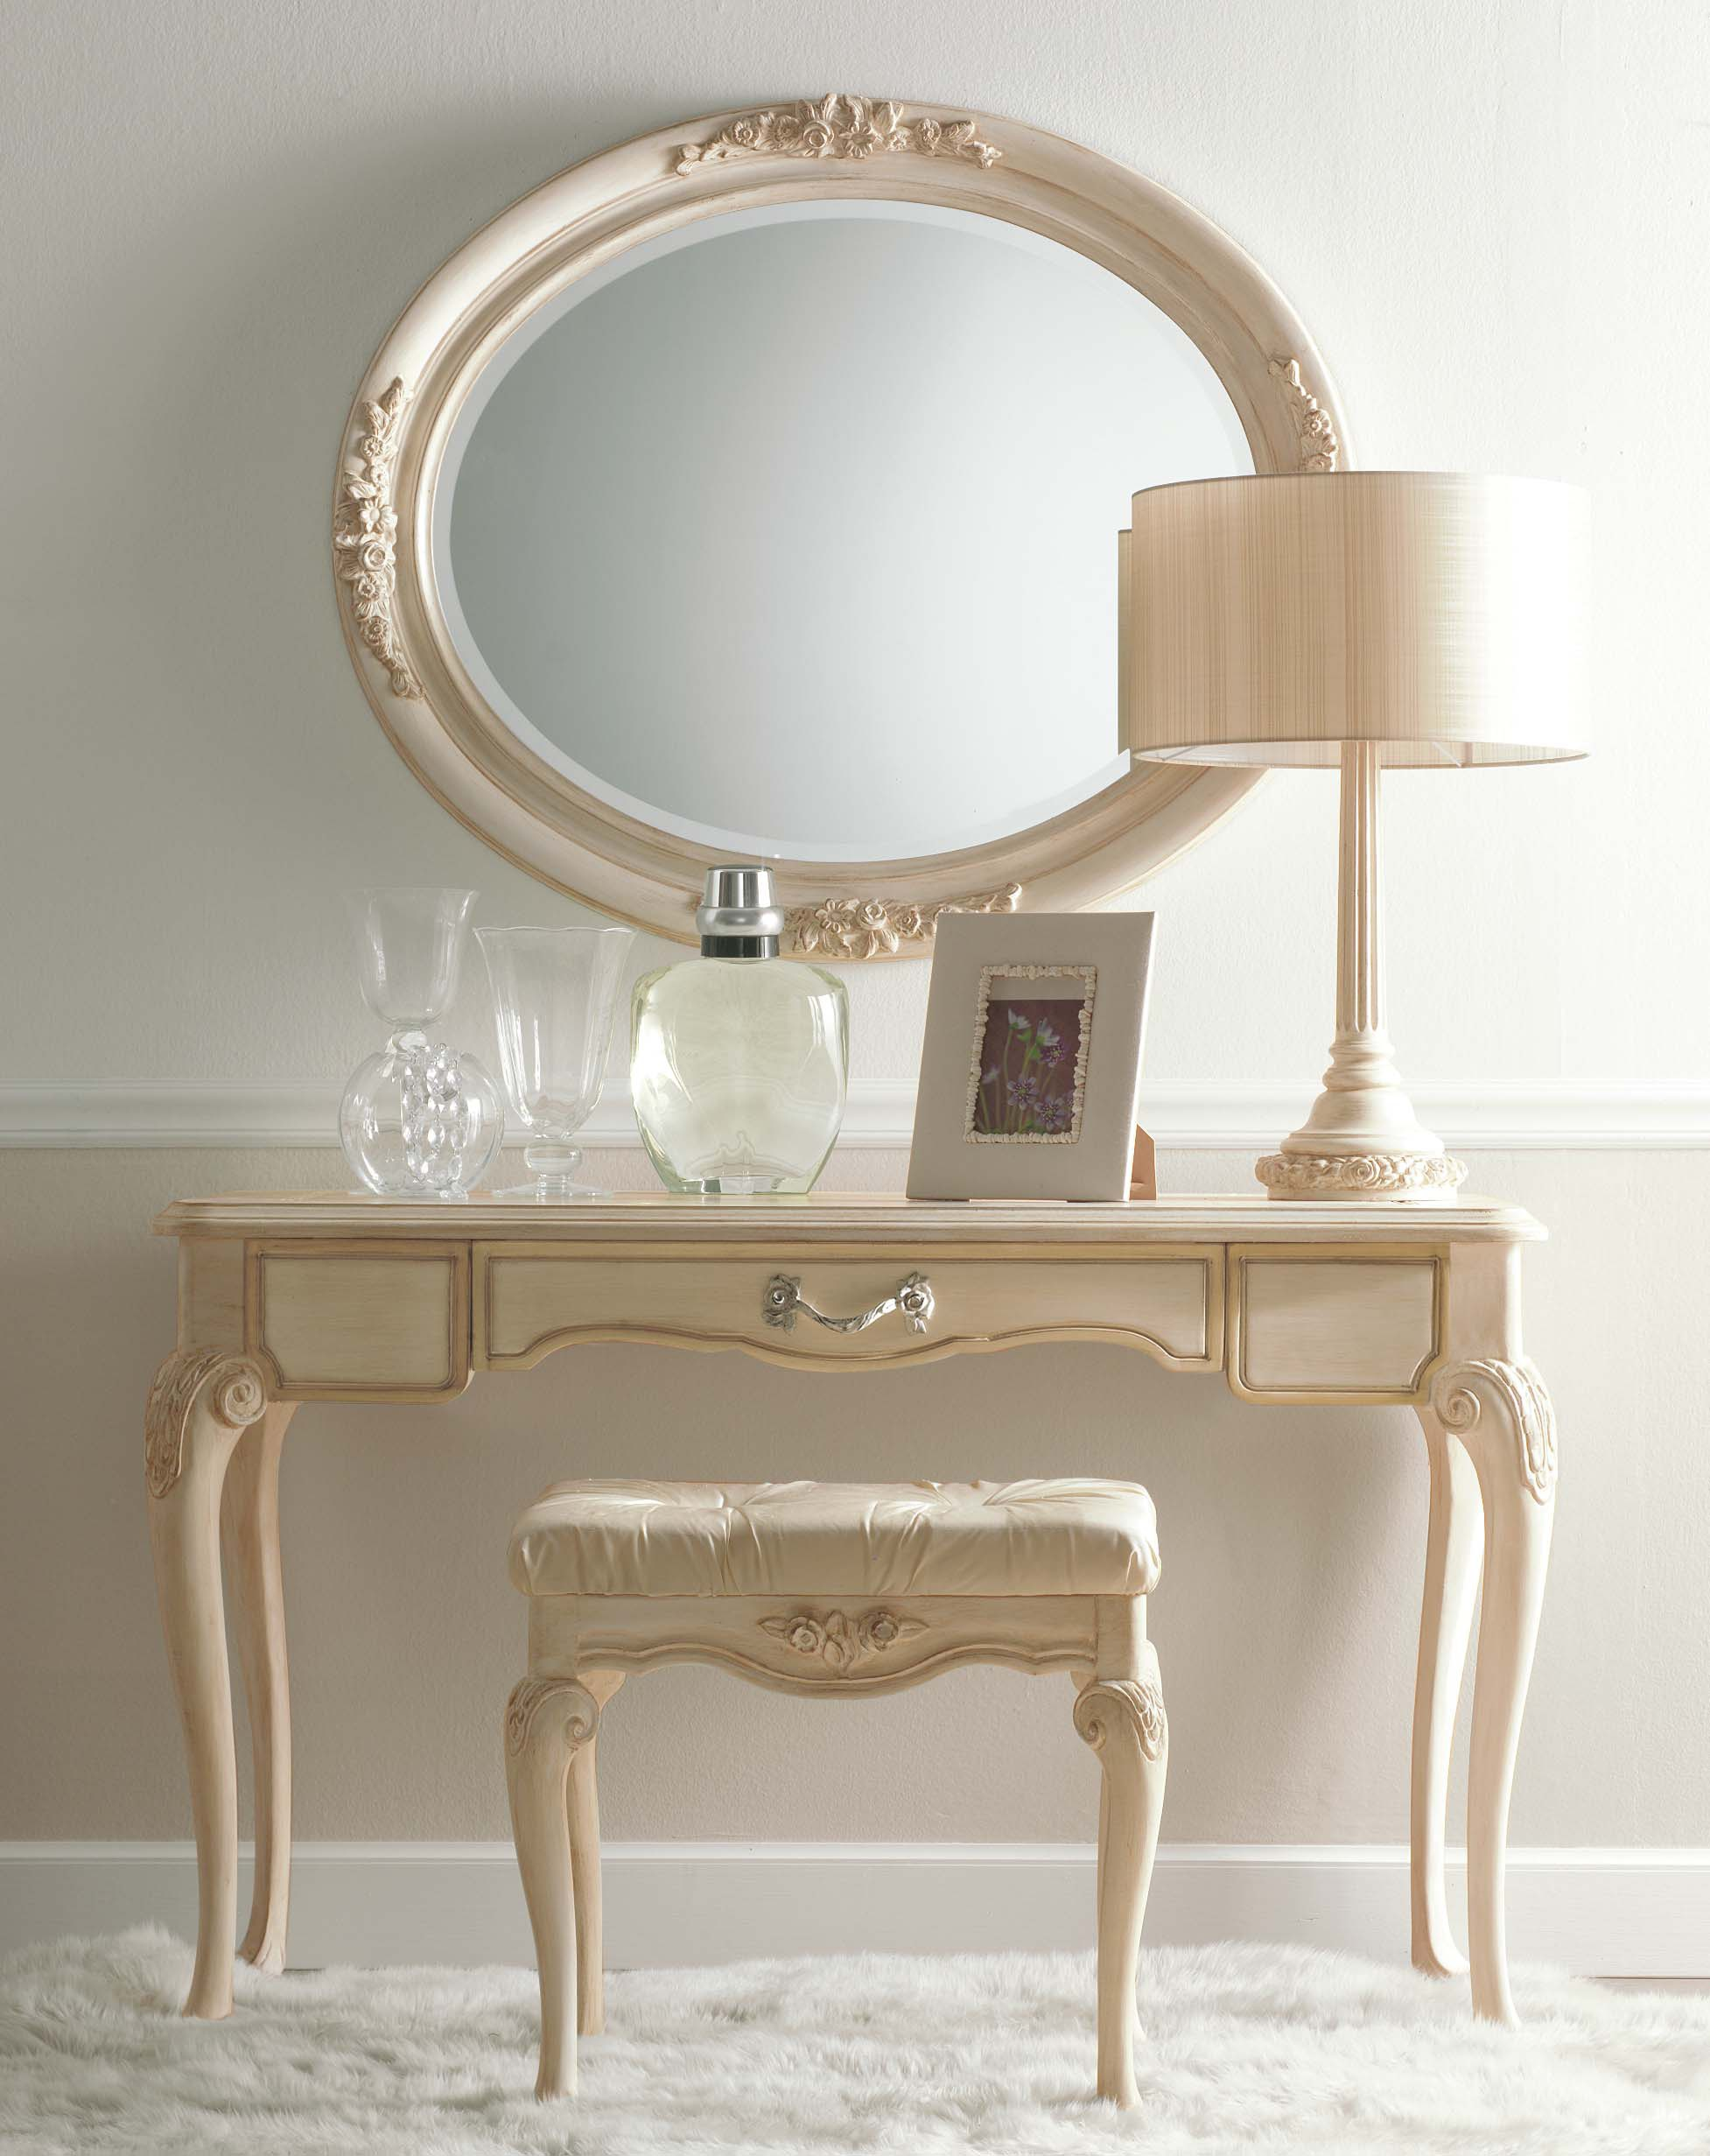 Dressing table solid wood ambiente notte savio firmino luxury dressing table solid wood ambiente notte savio firmino geotapseo Gallery